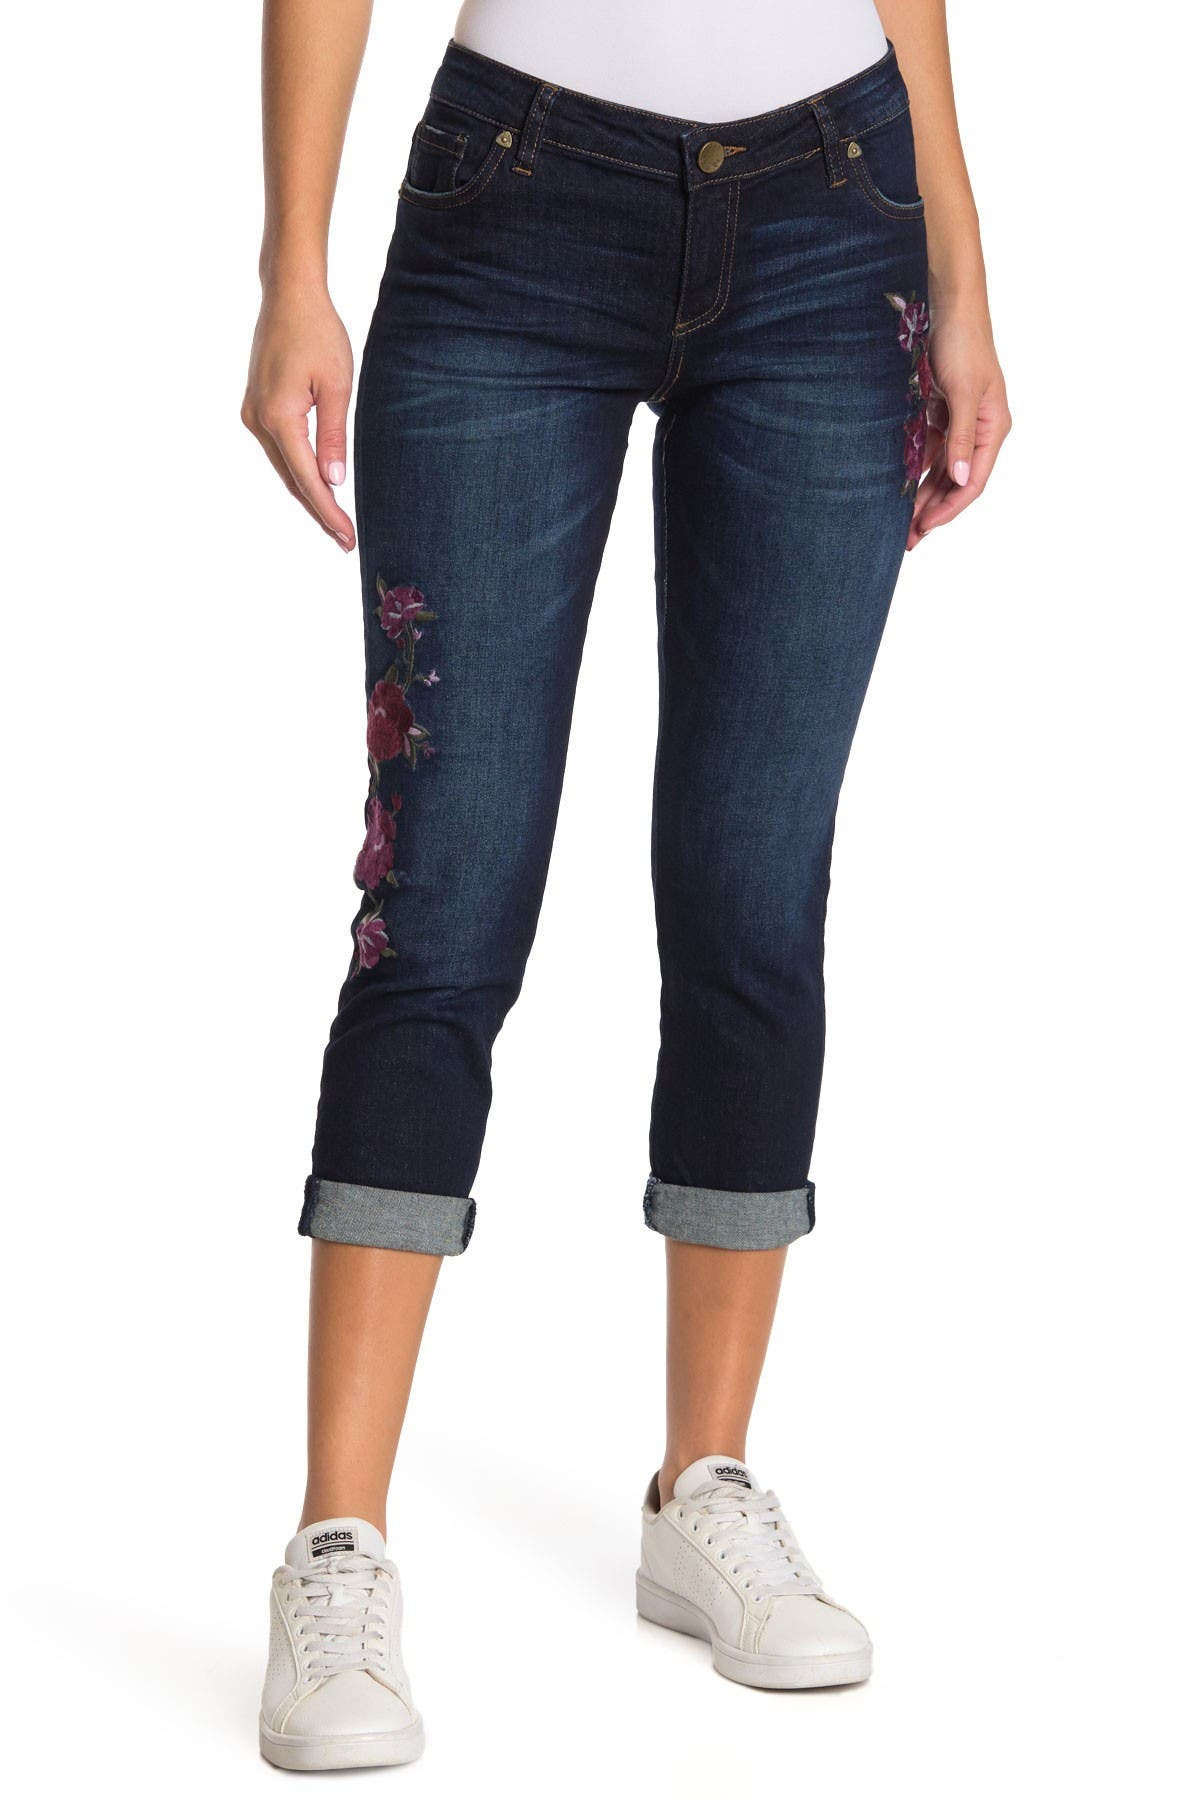 Image of KUT from the Kloth Catherine Floral Embroidered Boyfriend Jeans